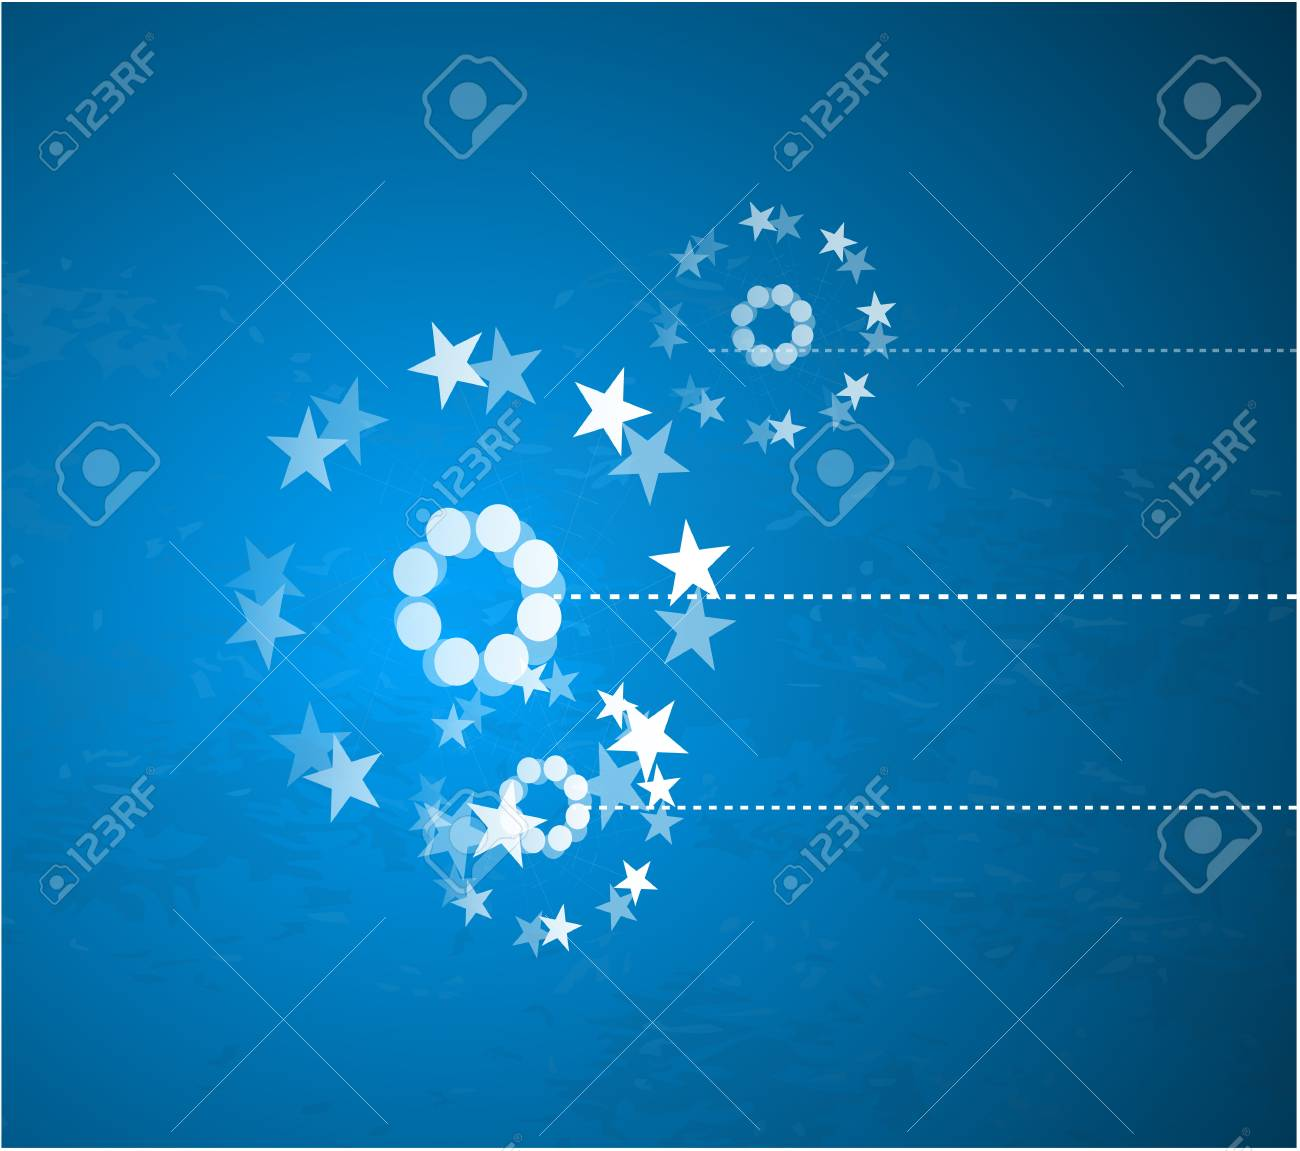 Blue Christmas background Stock Vector - 9933867